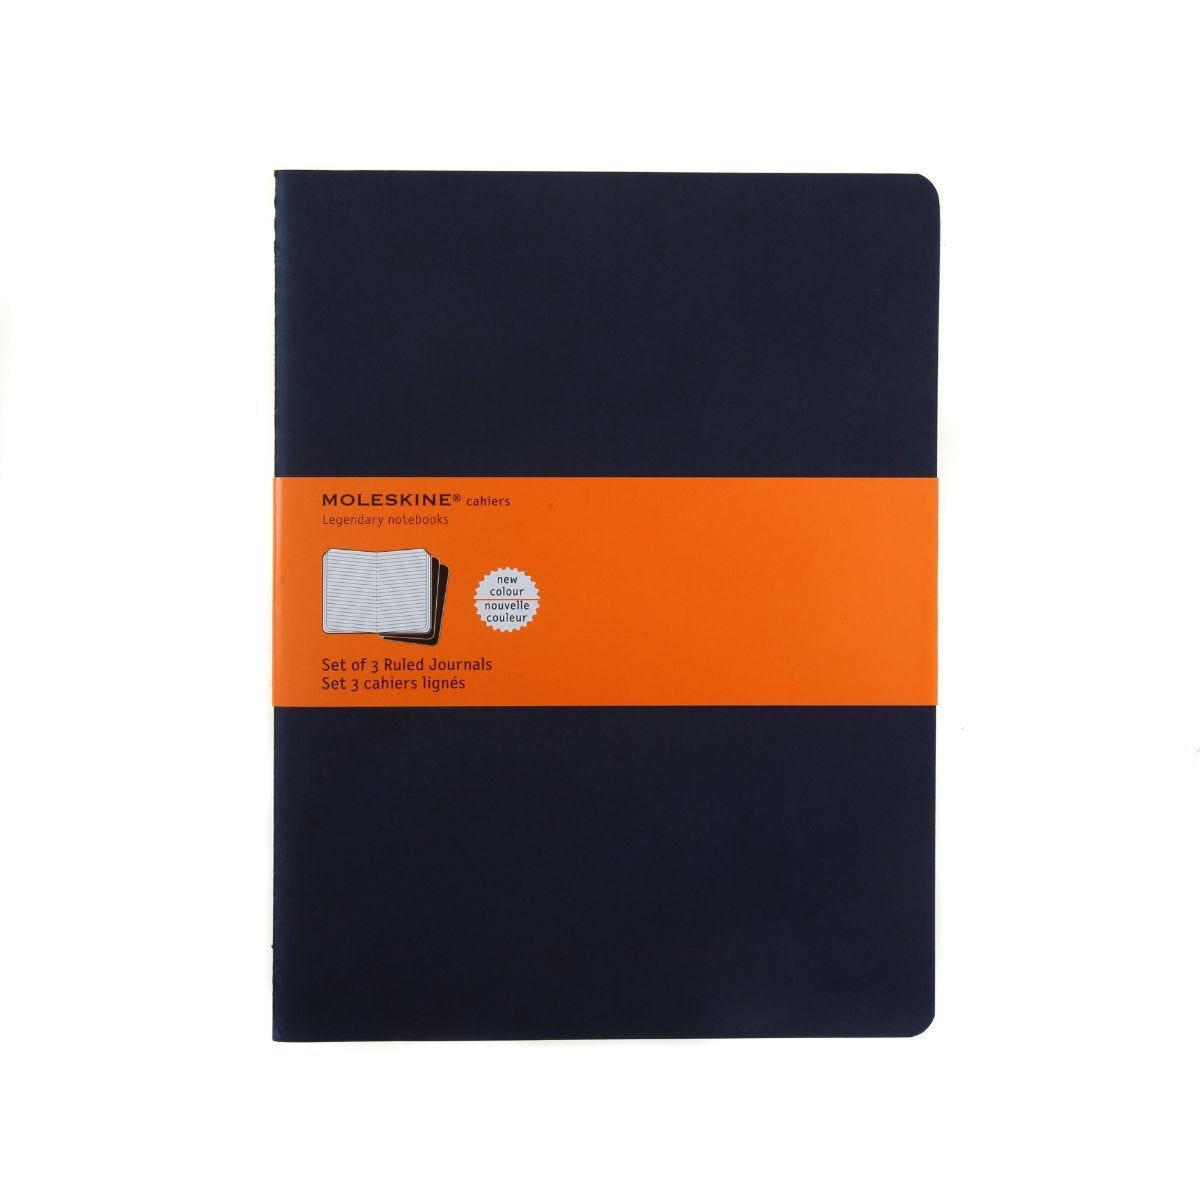 Moleskine Cahier Ruled Notebook Extra Large Pack of 3 Soft Cover